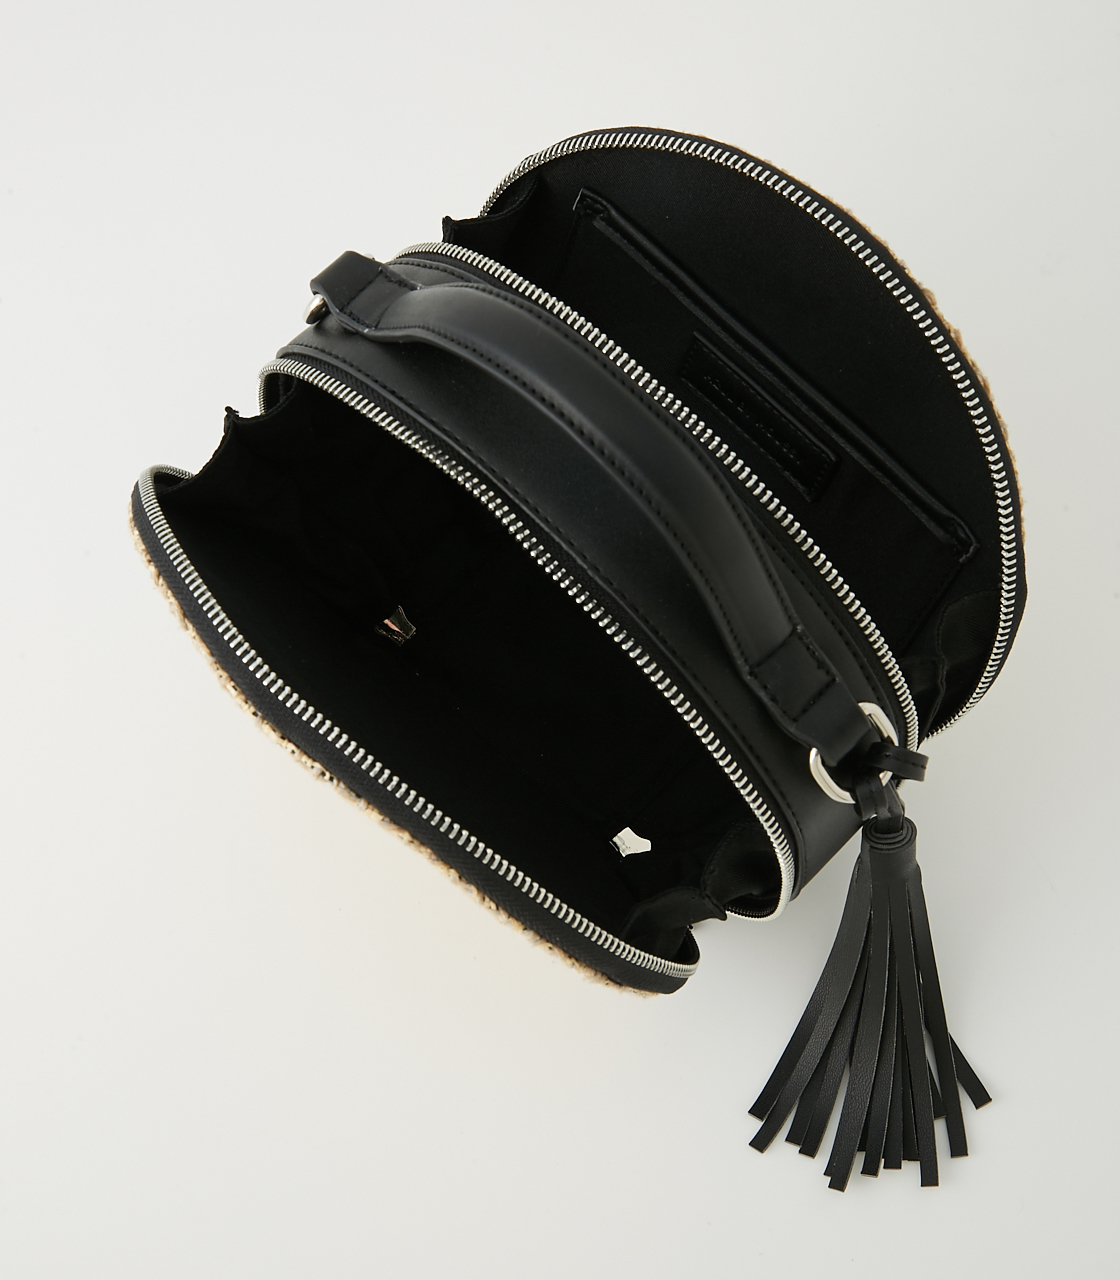 CIRCLE STRAWMESH SHOULDER BAG 詳細画像 柄BLK 6